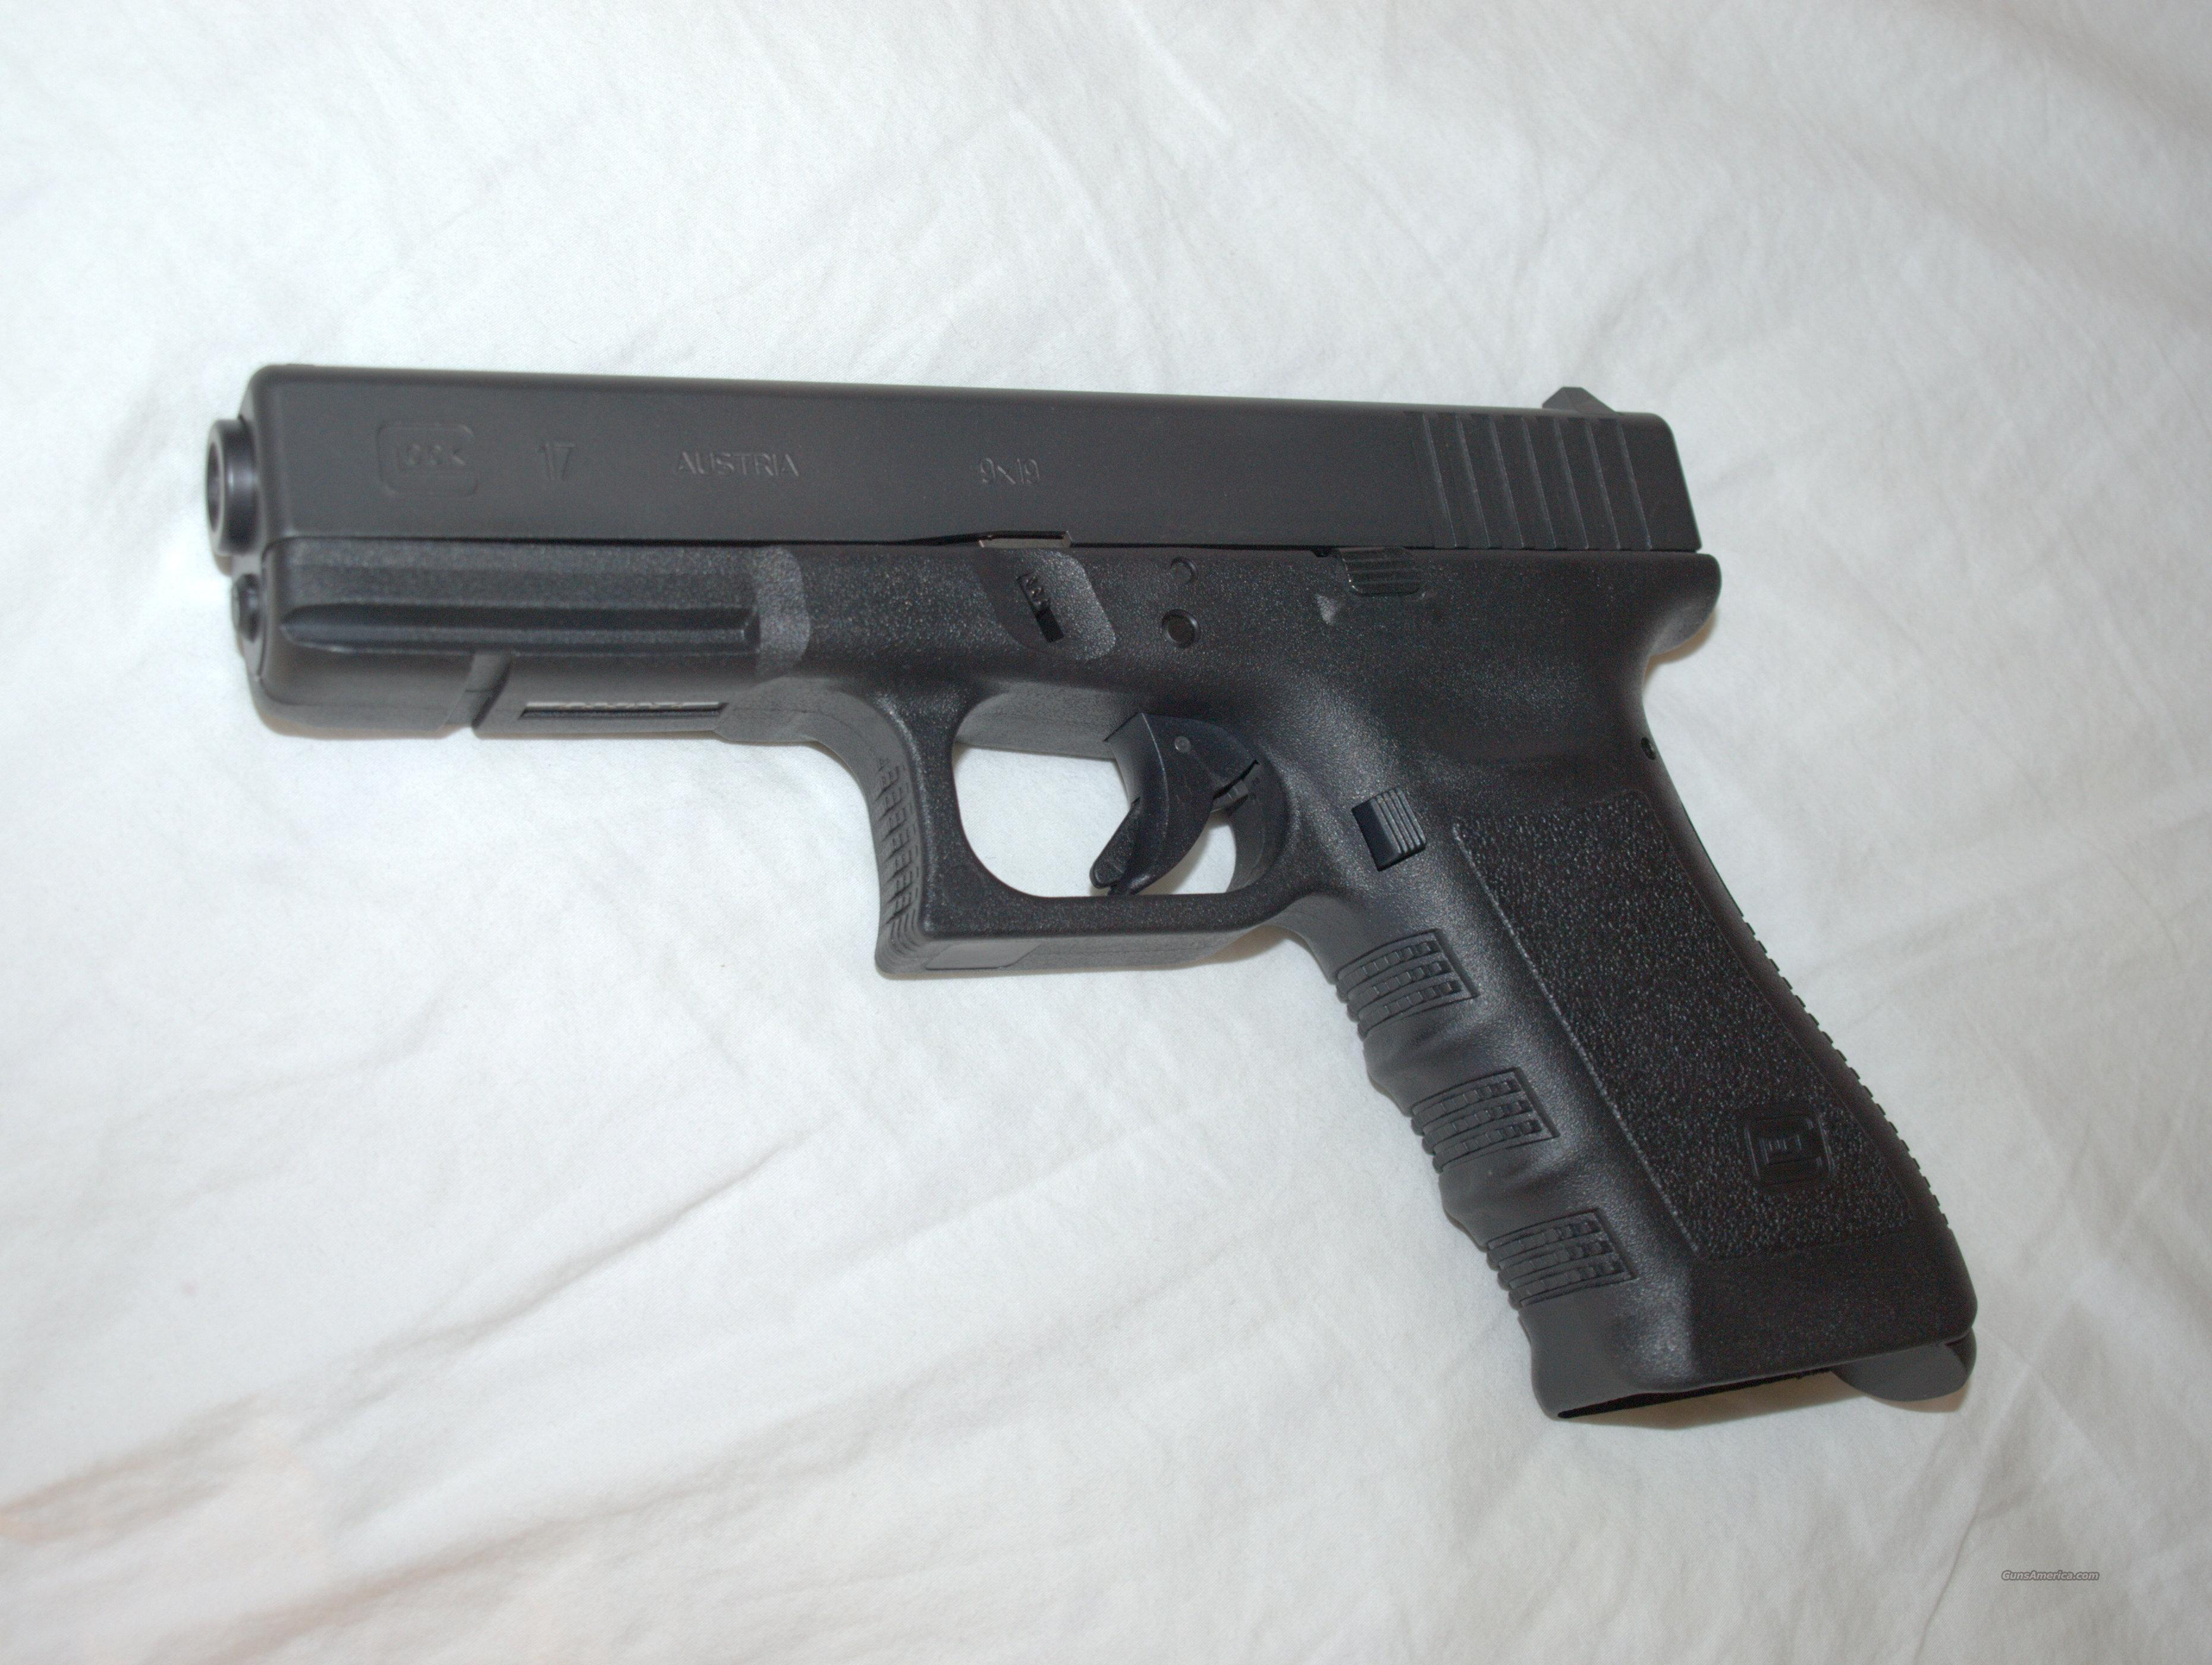 Glock 17 GEN3. less than 1 year old. San Jose, CA.  Guns > Pistols > Glock Pistols > 17